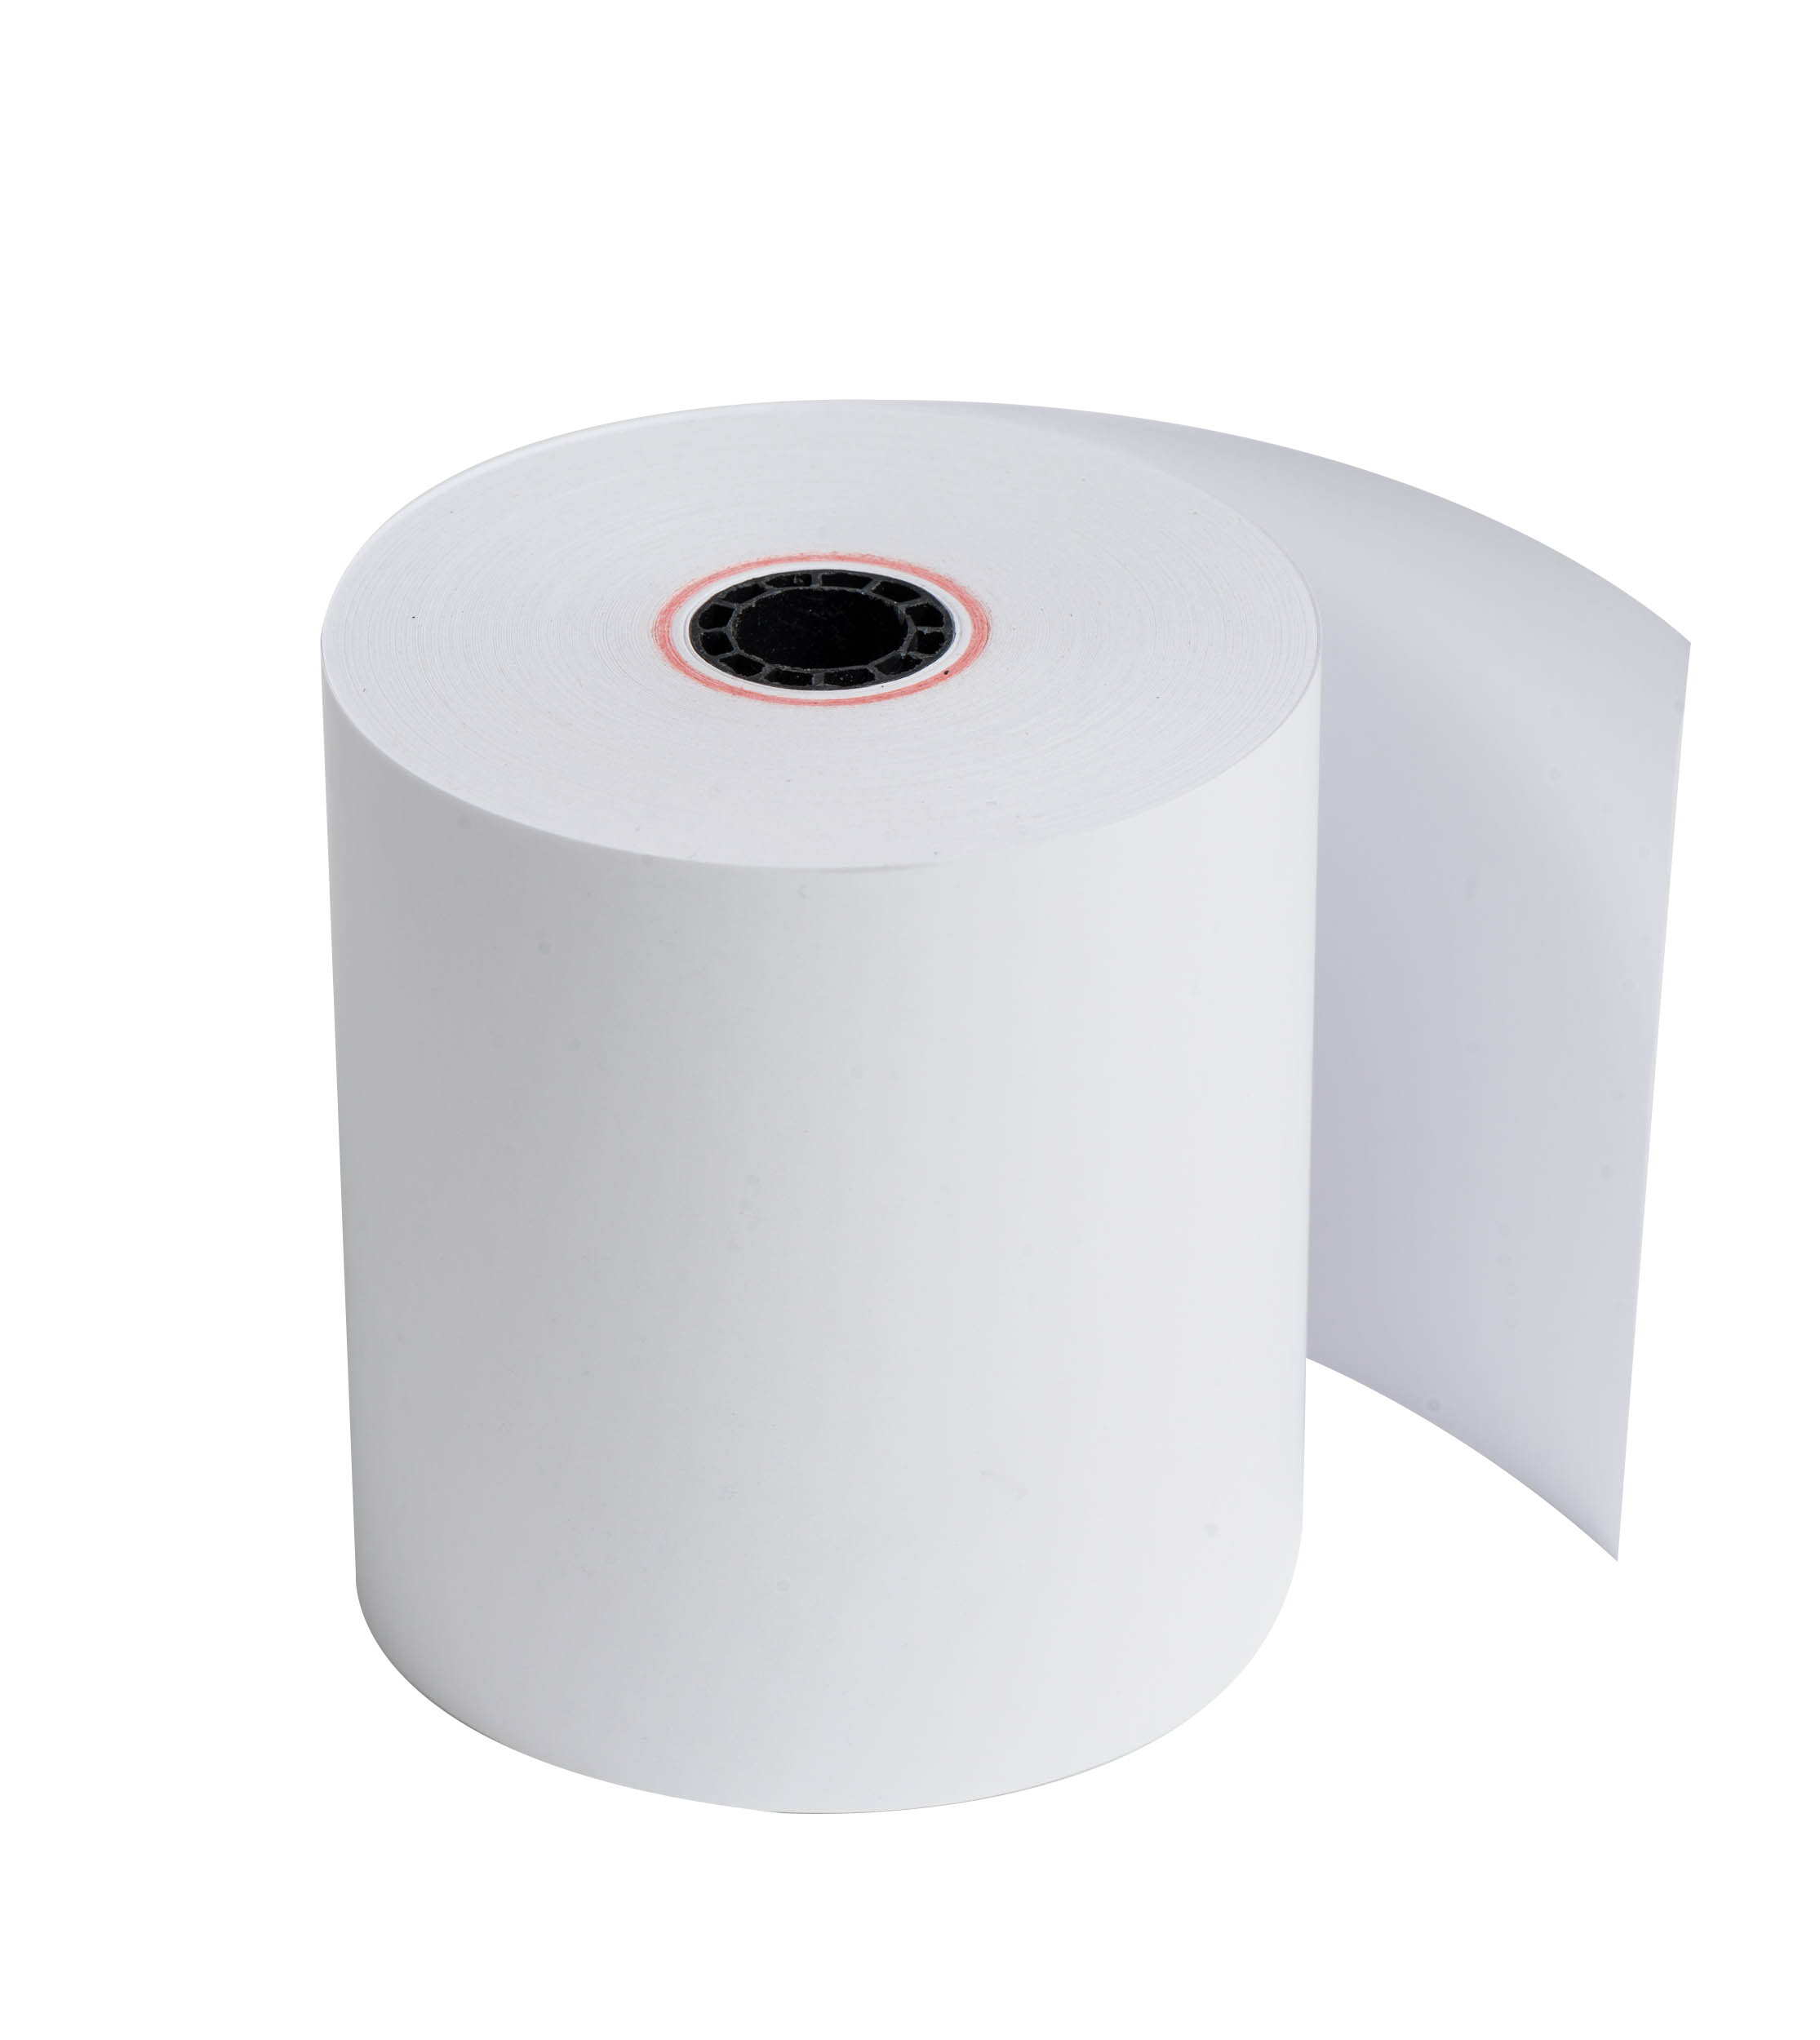 "Ritemade Paper 1-Ply Heavyweight Thermal Roll, 3 1/8"" x 1,980"", White, Carton Of 50 Rolls"